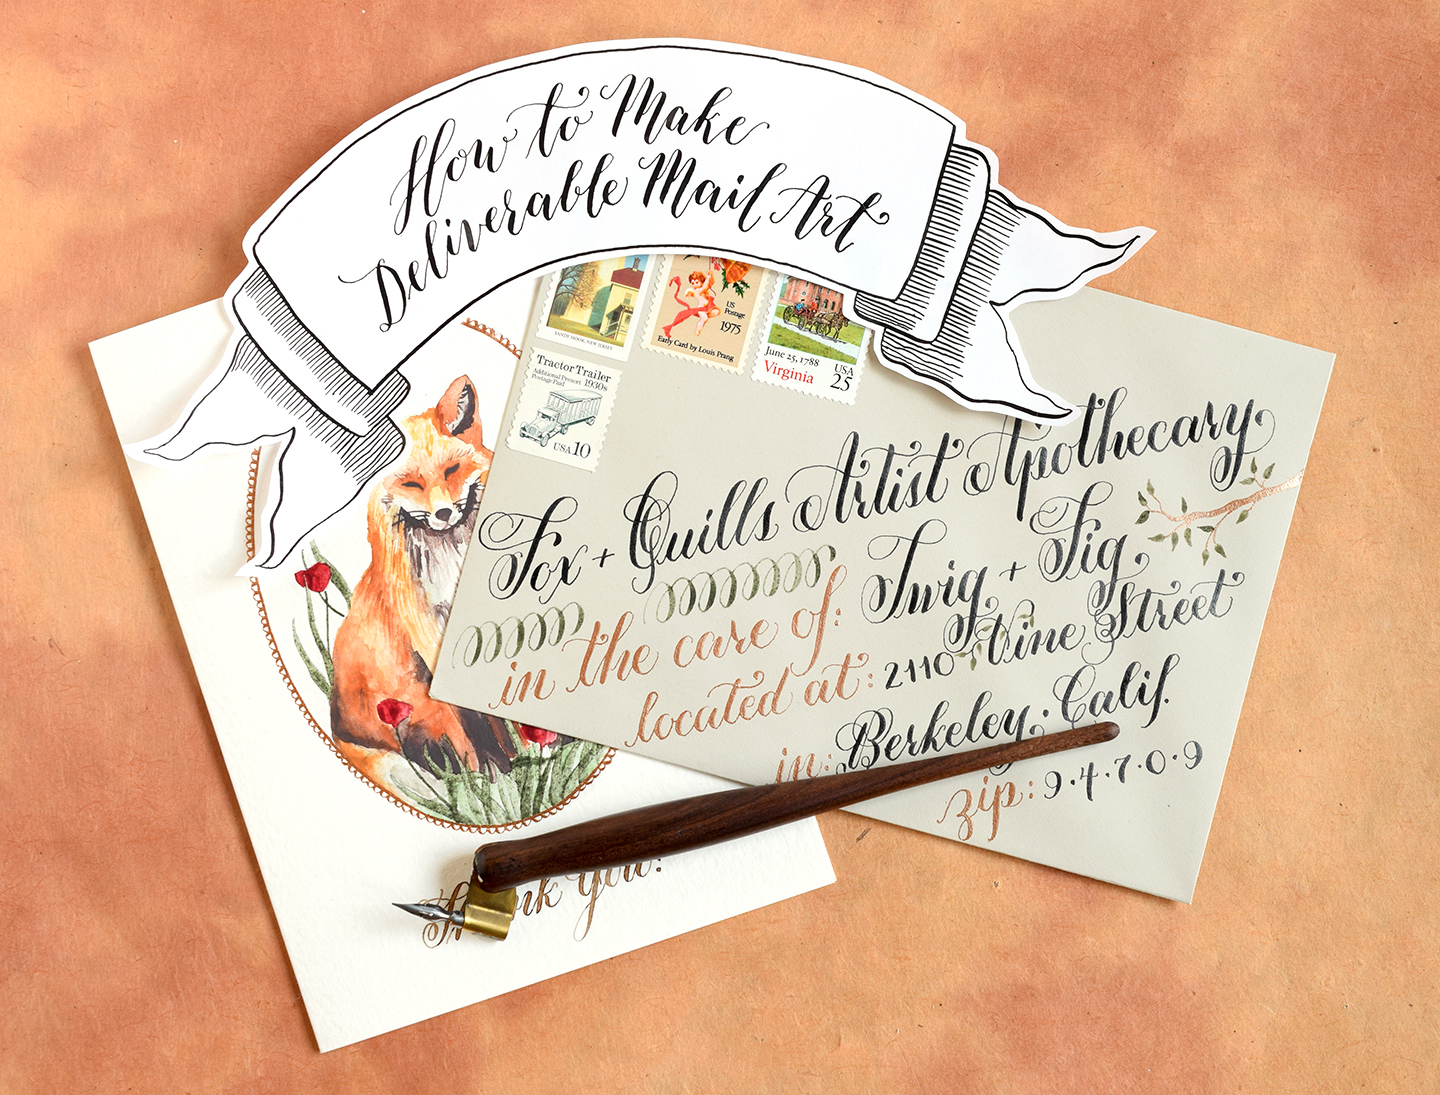 How to Make Deliverable Mail Art – The Postman's Knock